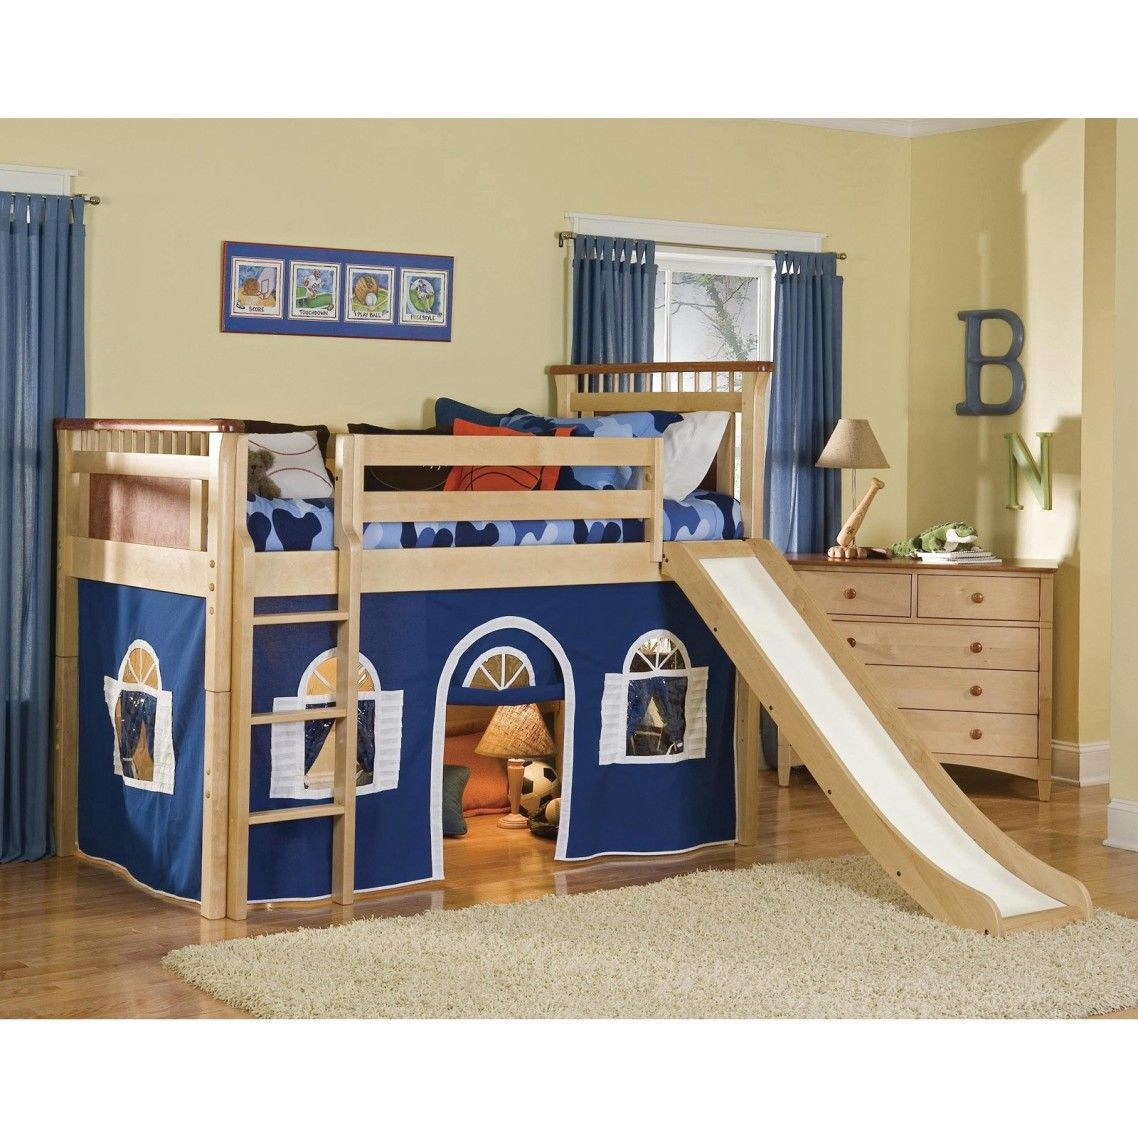 Dazzling Cool Kid Beds With Cream Wooden Bunk Bed Frame